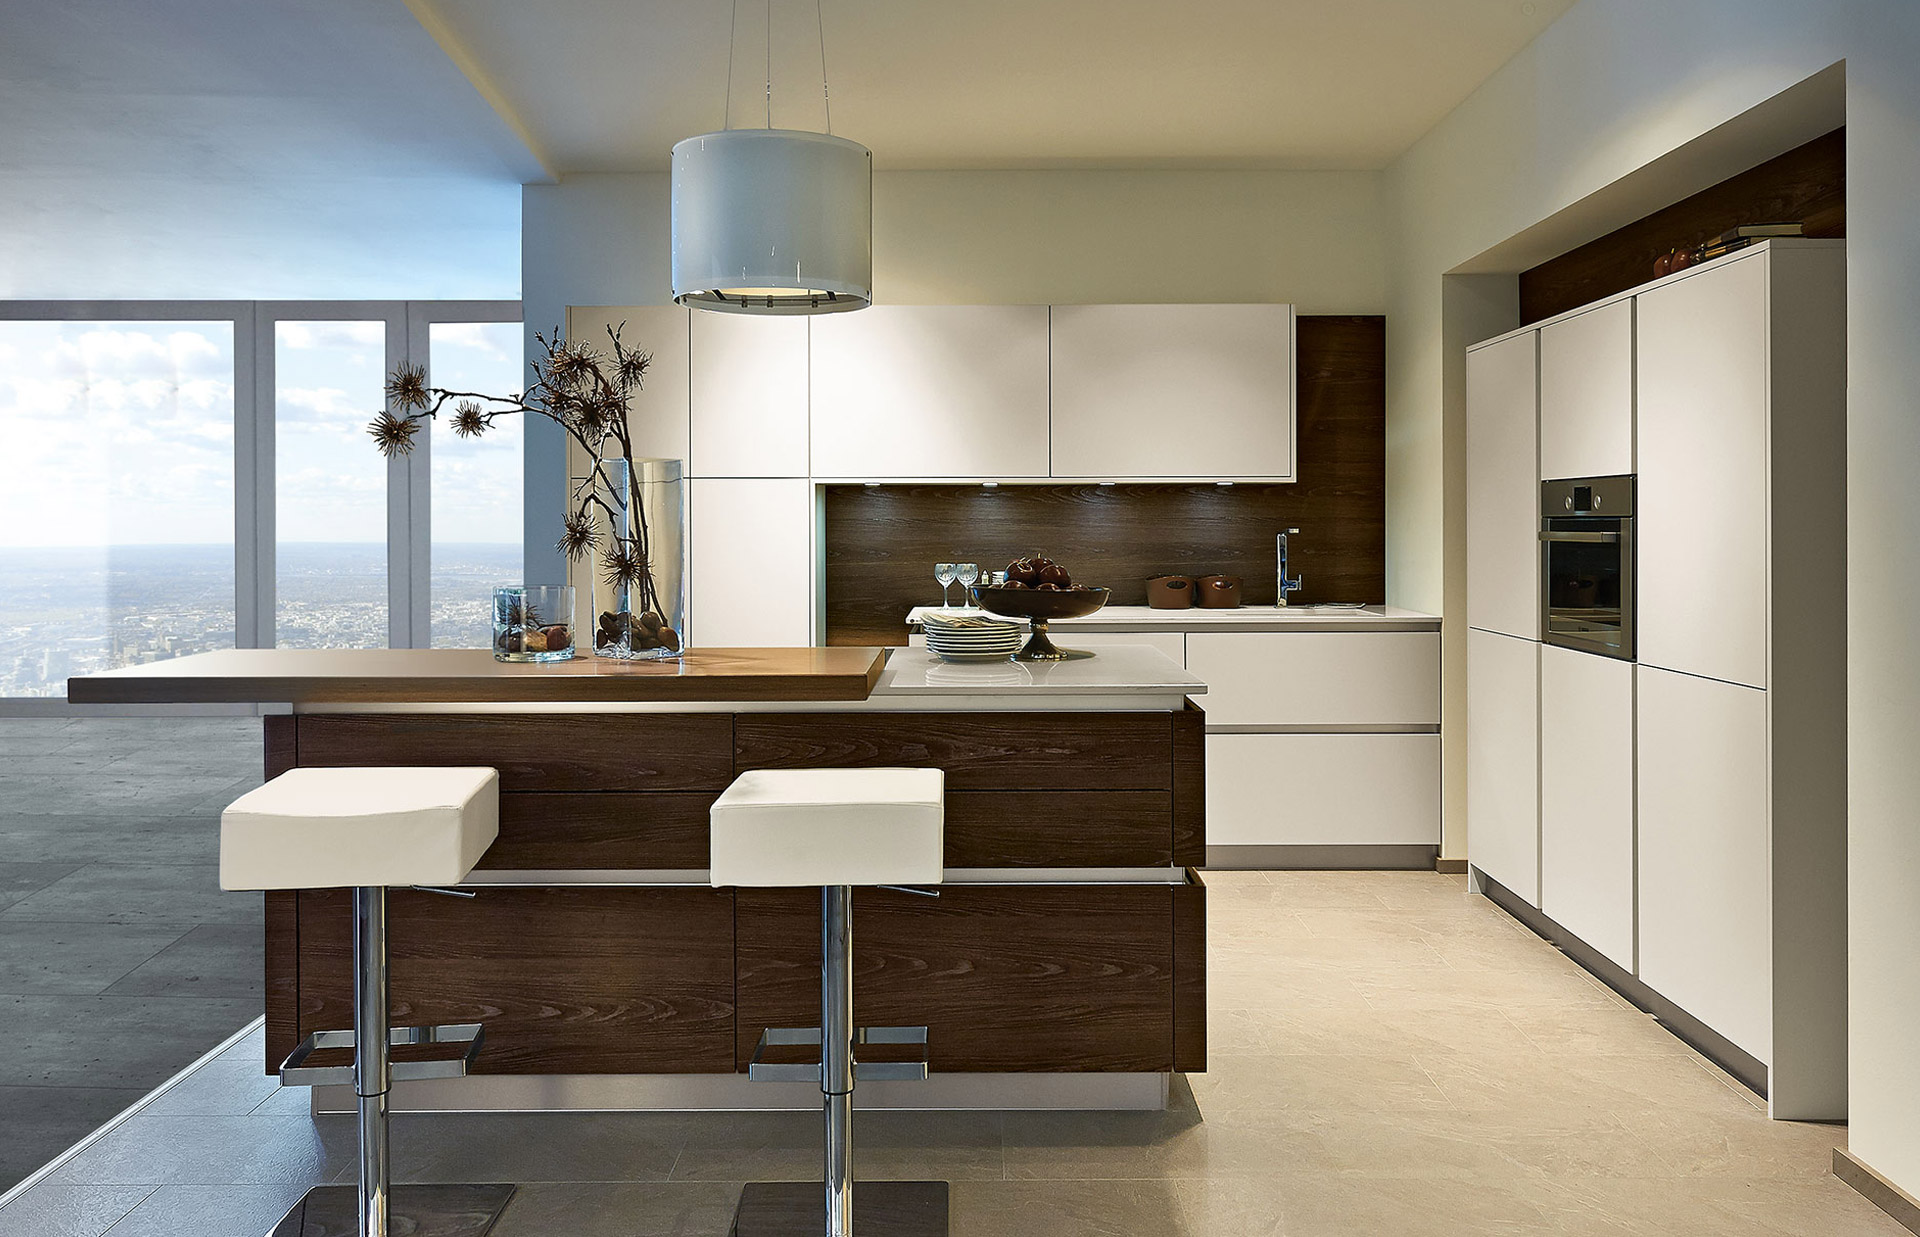 Stormer Cuisine German Kitchens Fitted Kitchen Supplier In Kingswood Kent